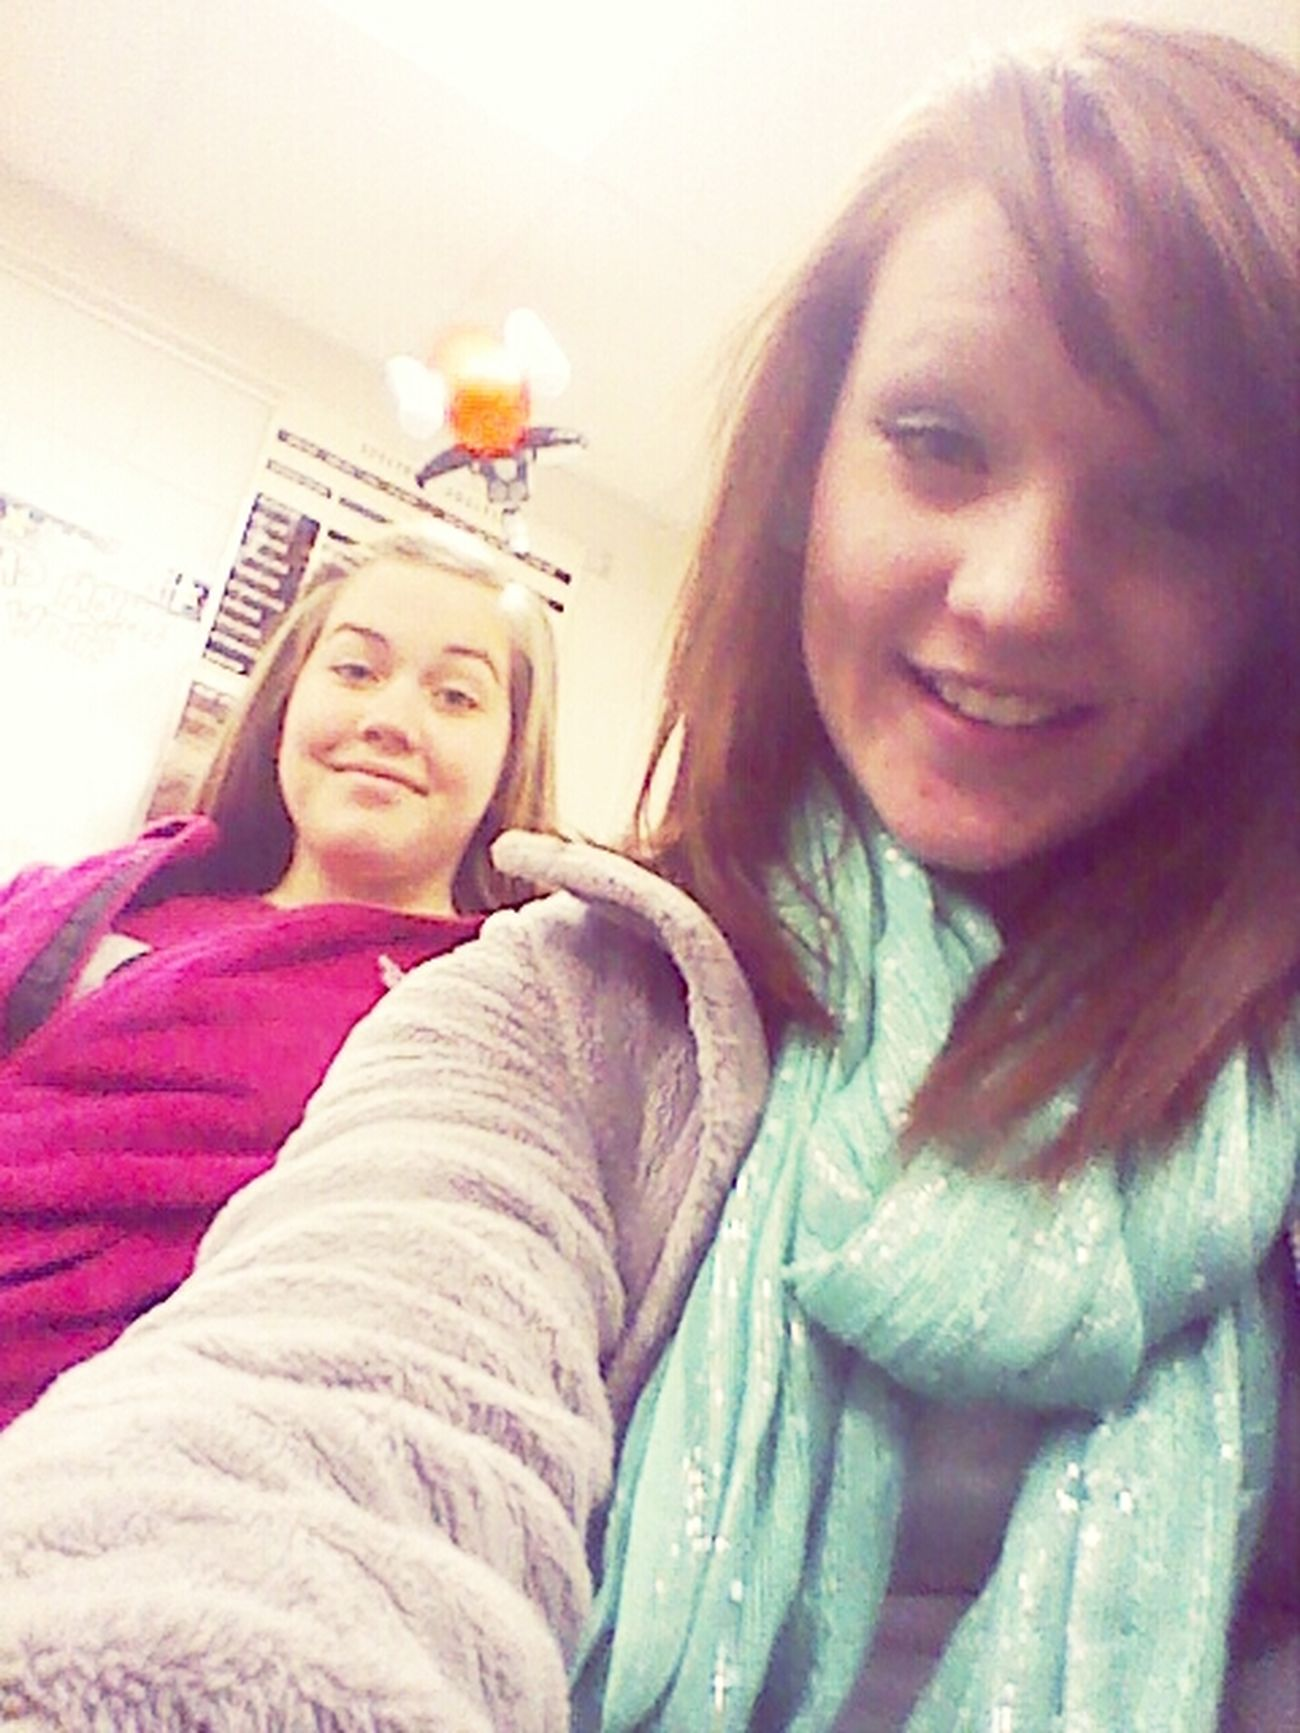 at school. with Hannah. boo(((((((;;;;;;